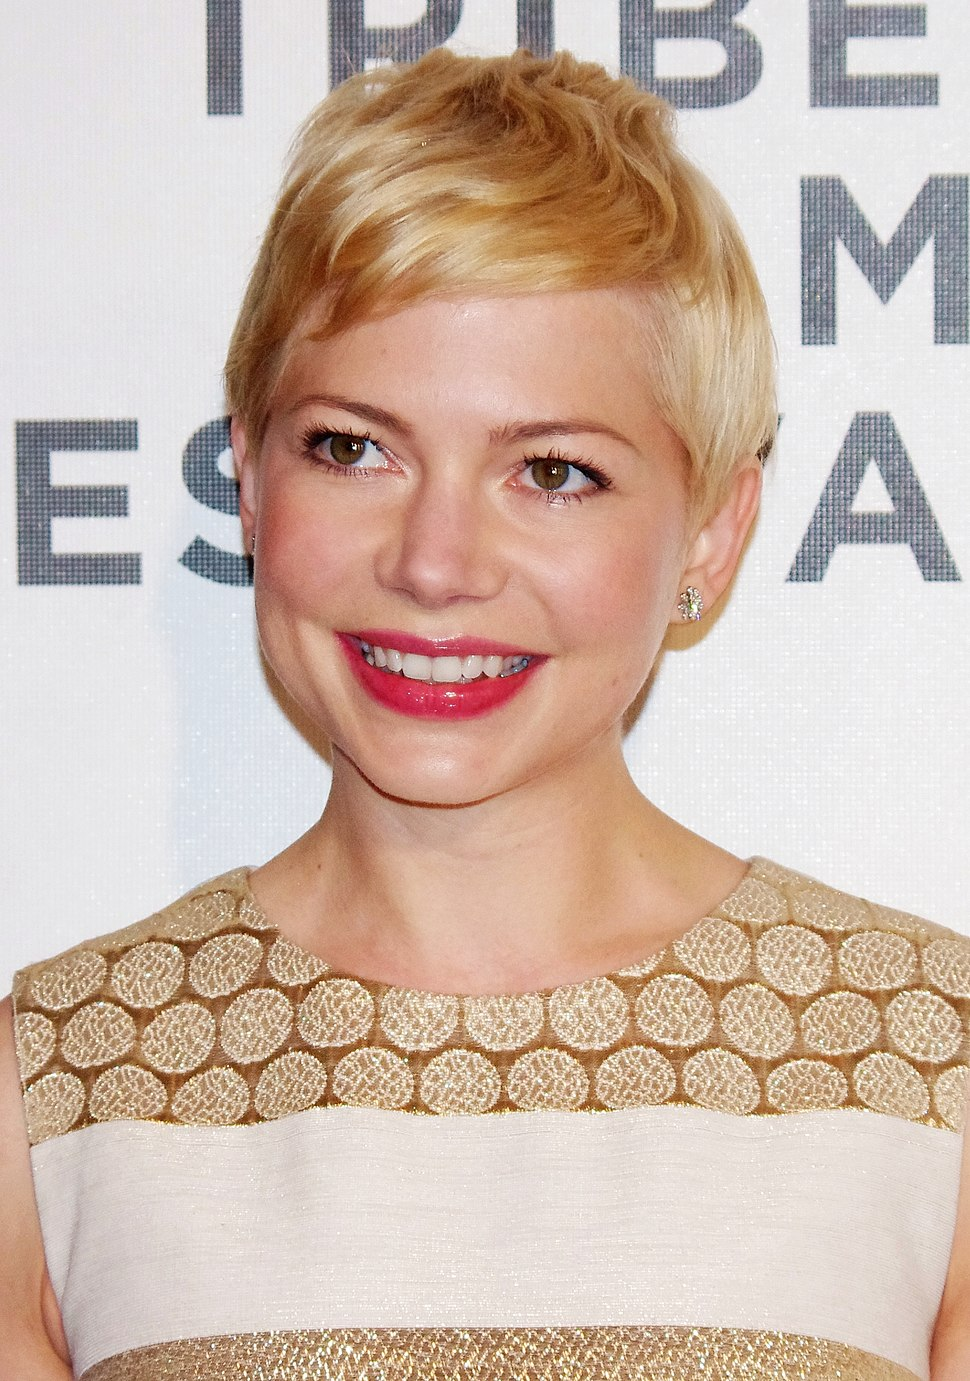 Michelle Williams 2012 Shankbone 3 (cropped)